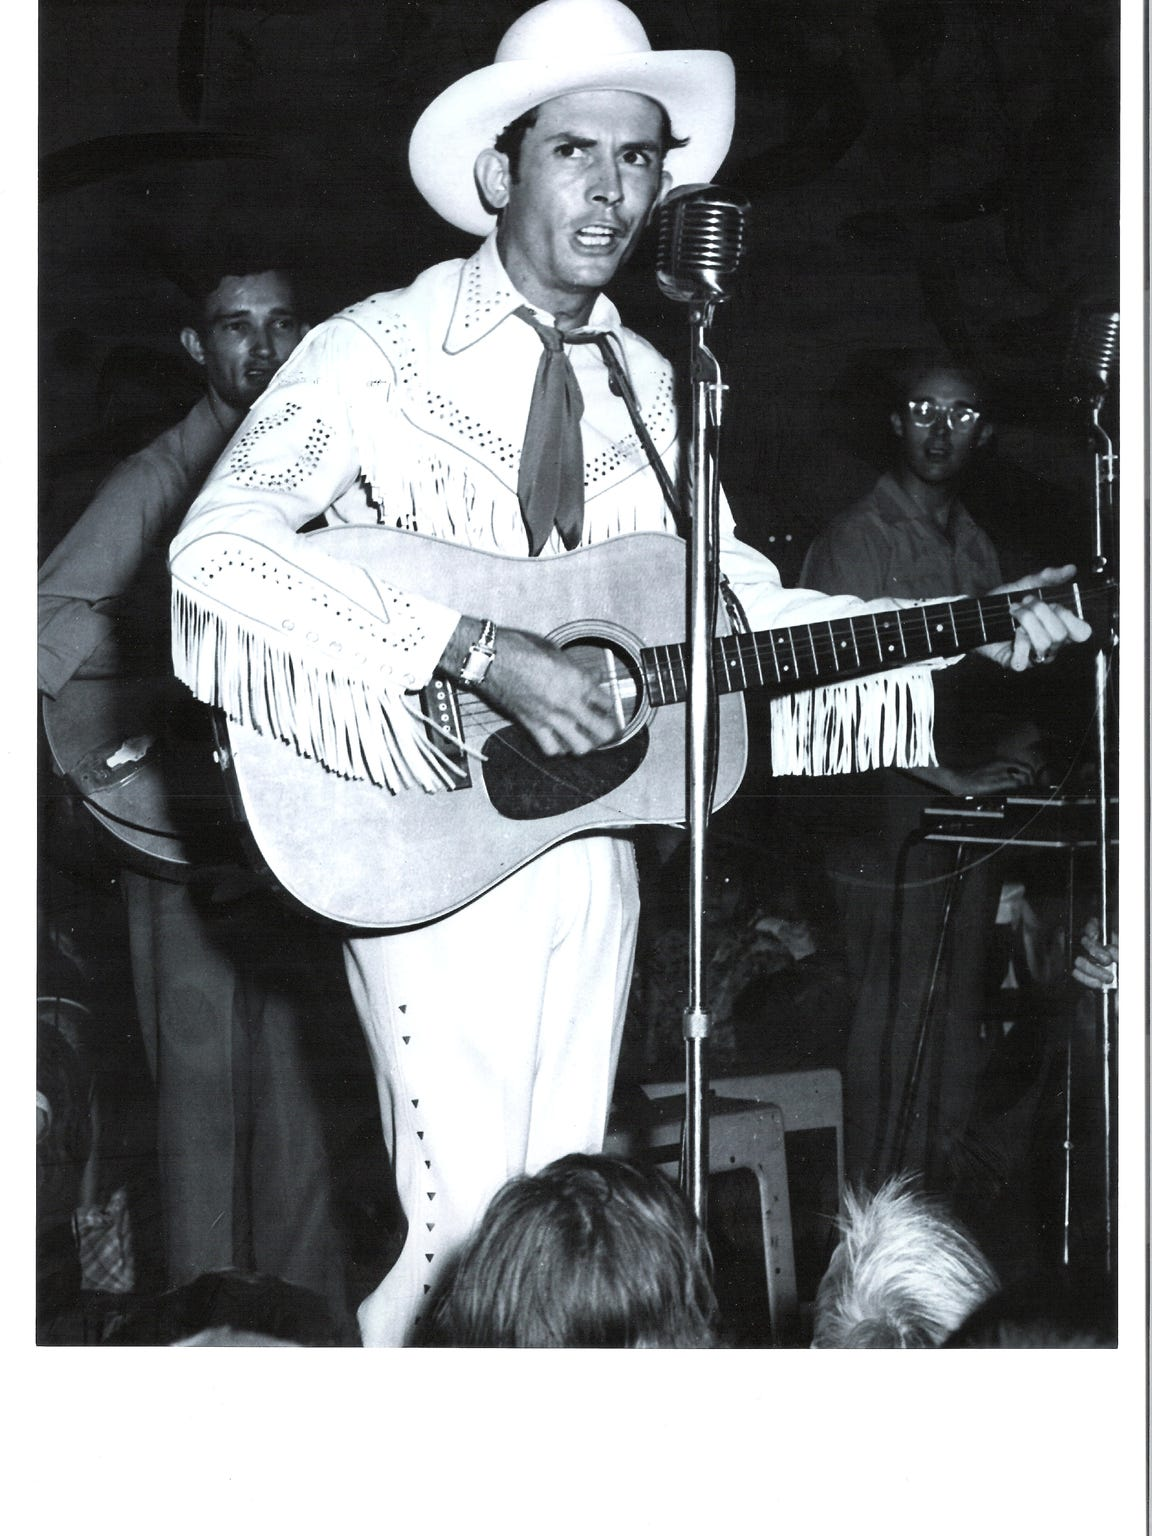 Sixty years after his death, Hank Williams remains